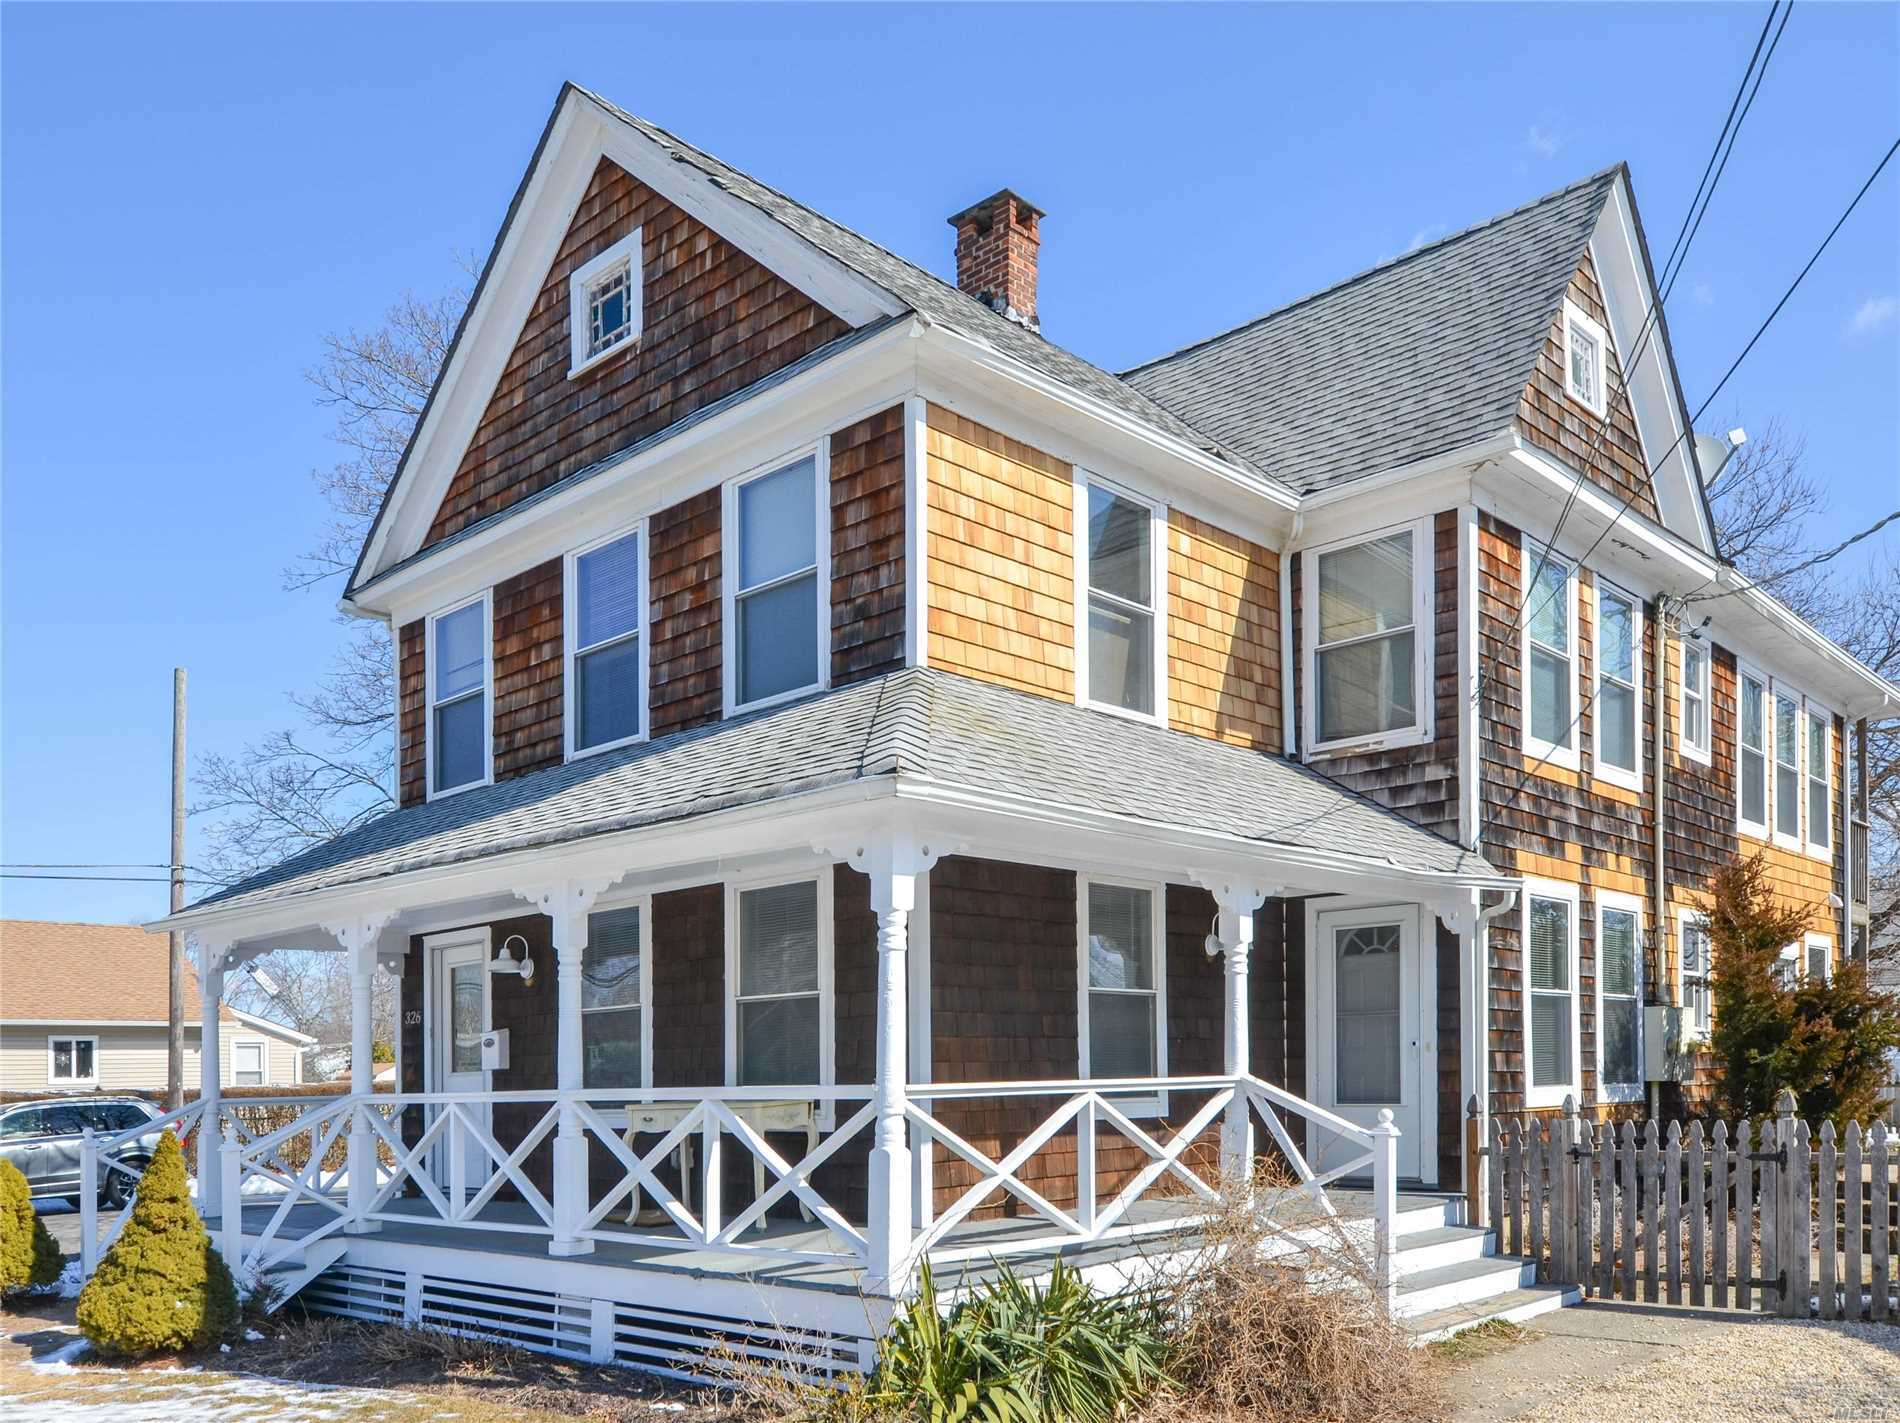 Lovely and bright living space, 2 beds, 3 bath ground floor apartment in the heart of Greenport. Close to beach, town and restaurants. An exceptional North Fork space just a Jitney ride away.